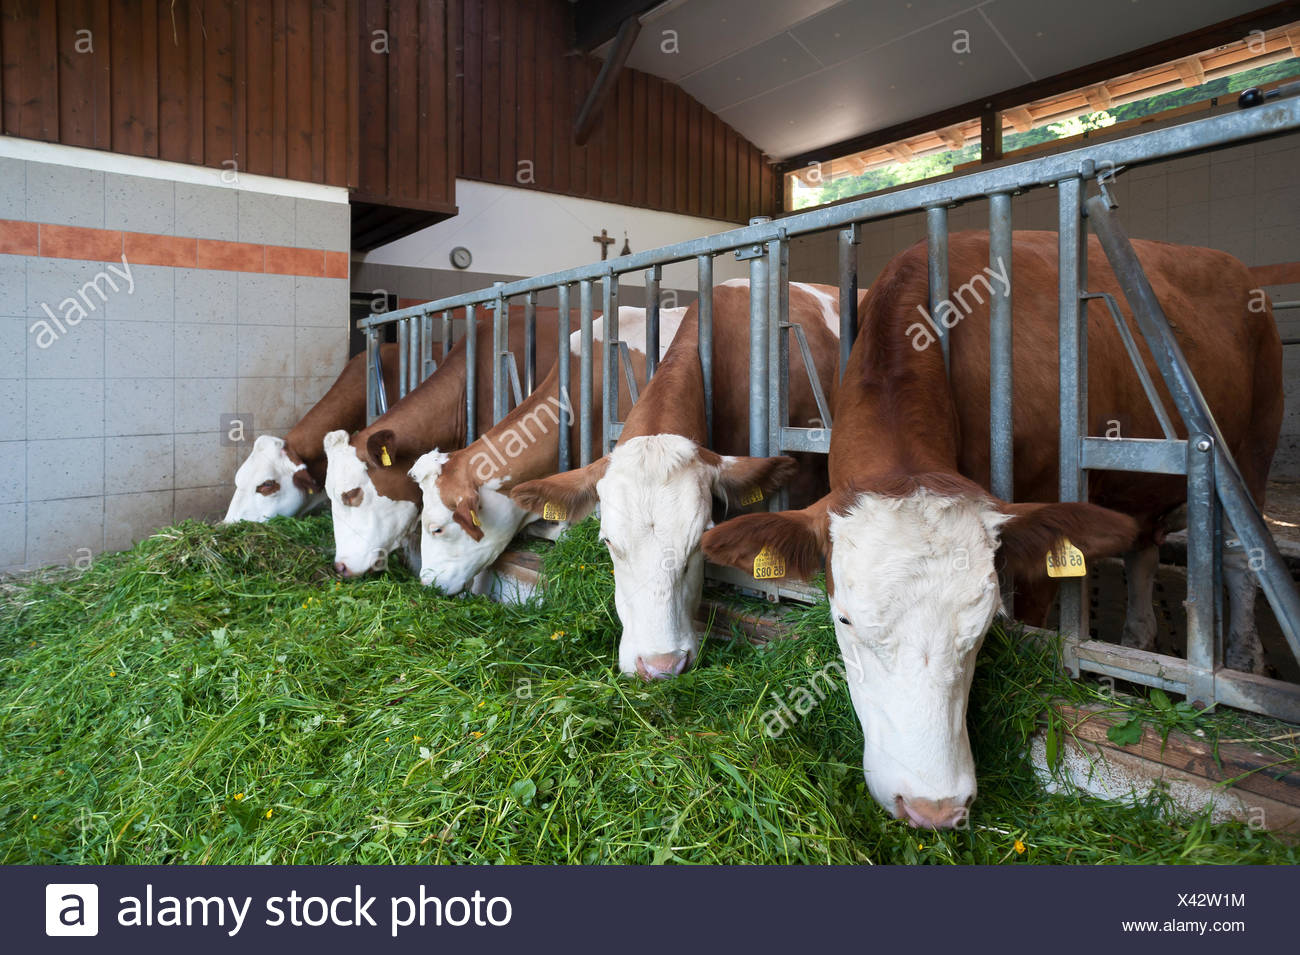 Dairy cows in an excercise pen eating grass, Oberbayern, Germany - Stock Image